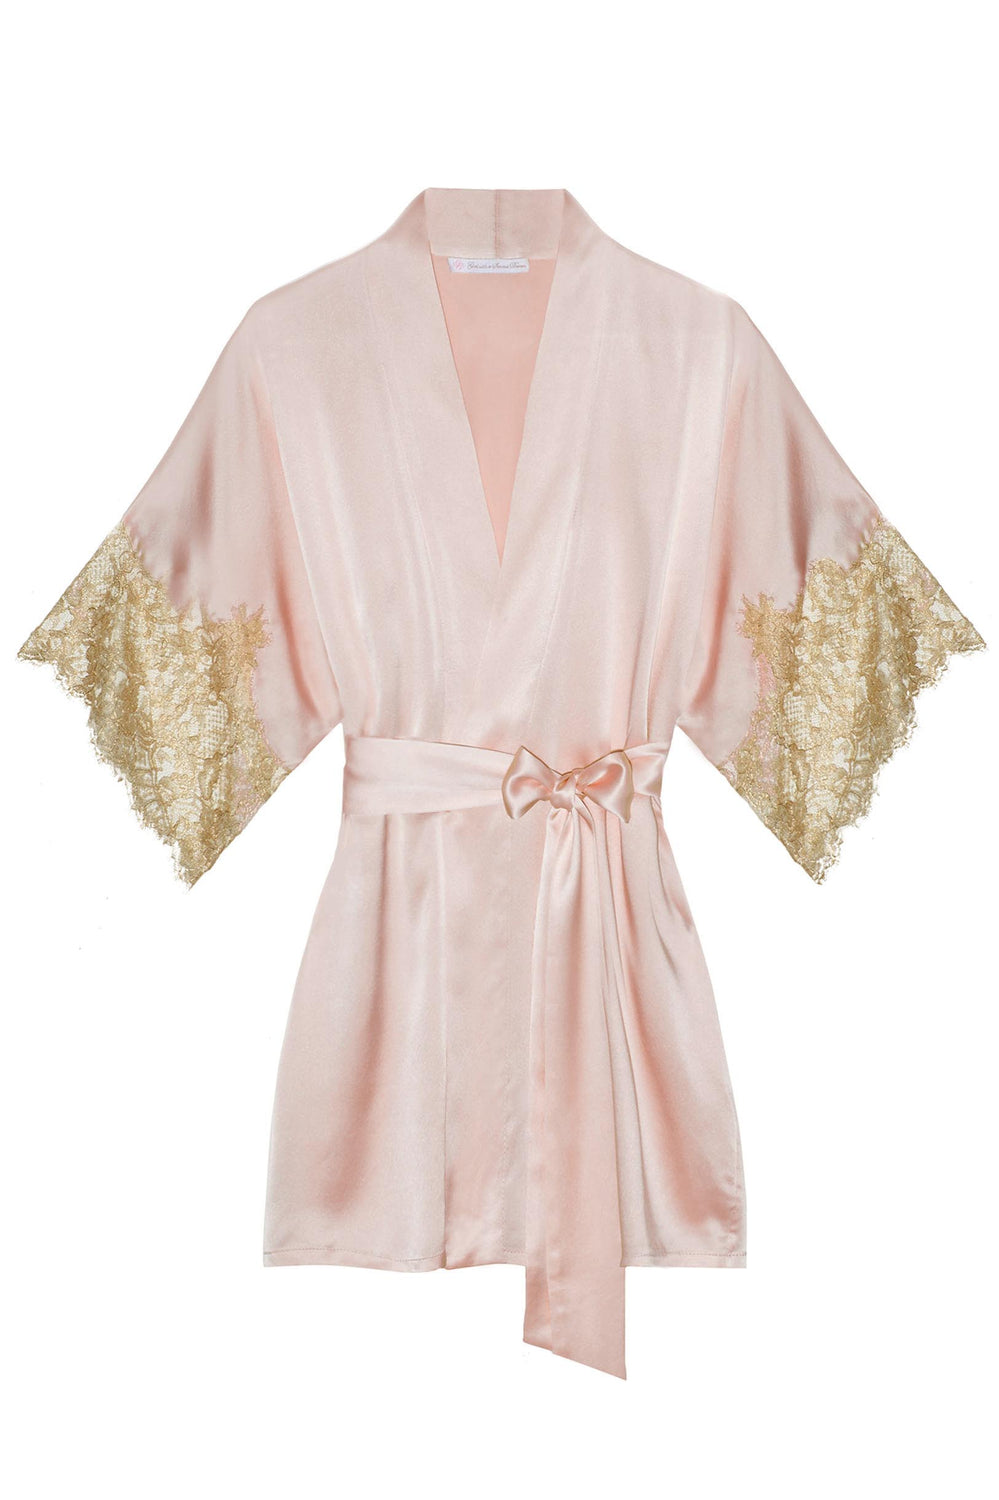 Tara Gilded Sleeve Silk Kimono robe in Ivory + Ivory gold lace - Style R77